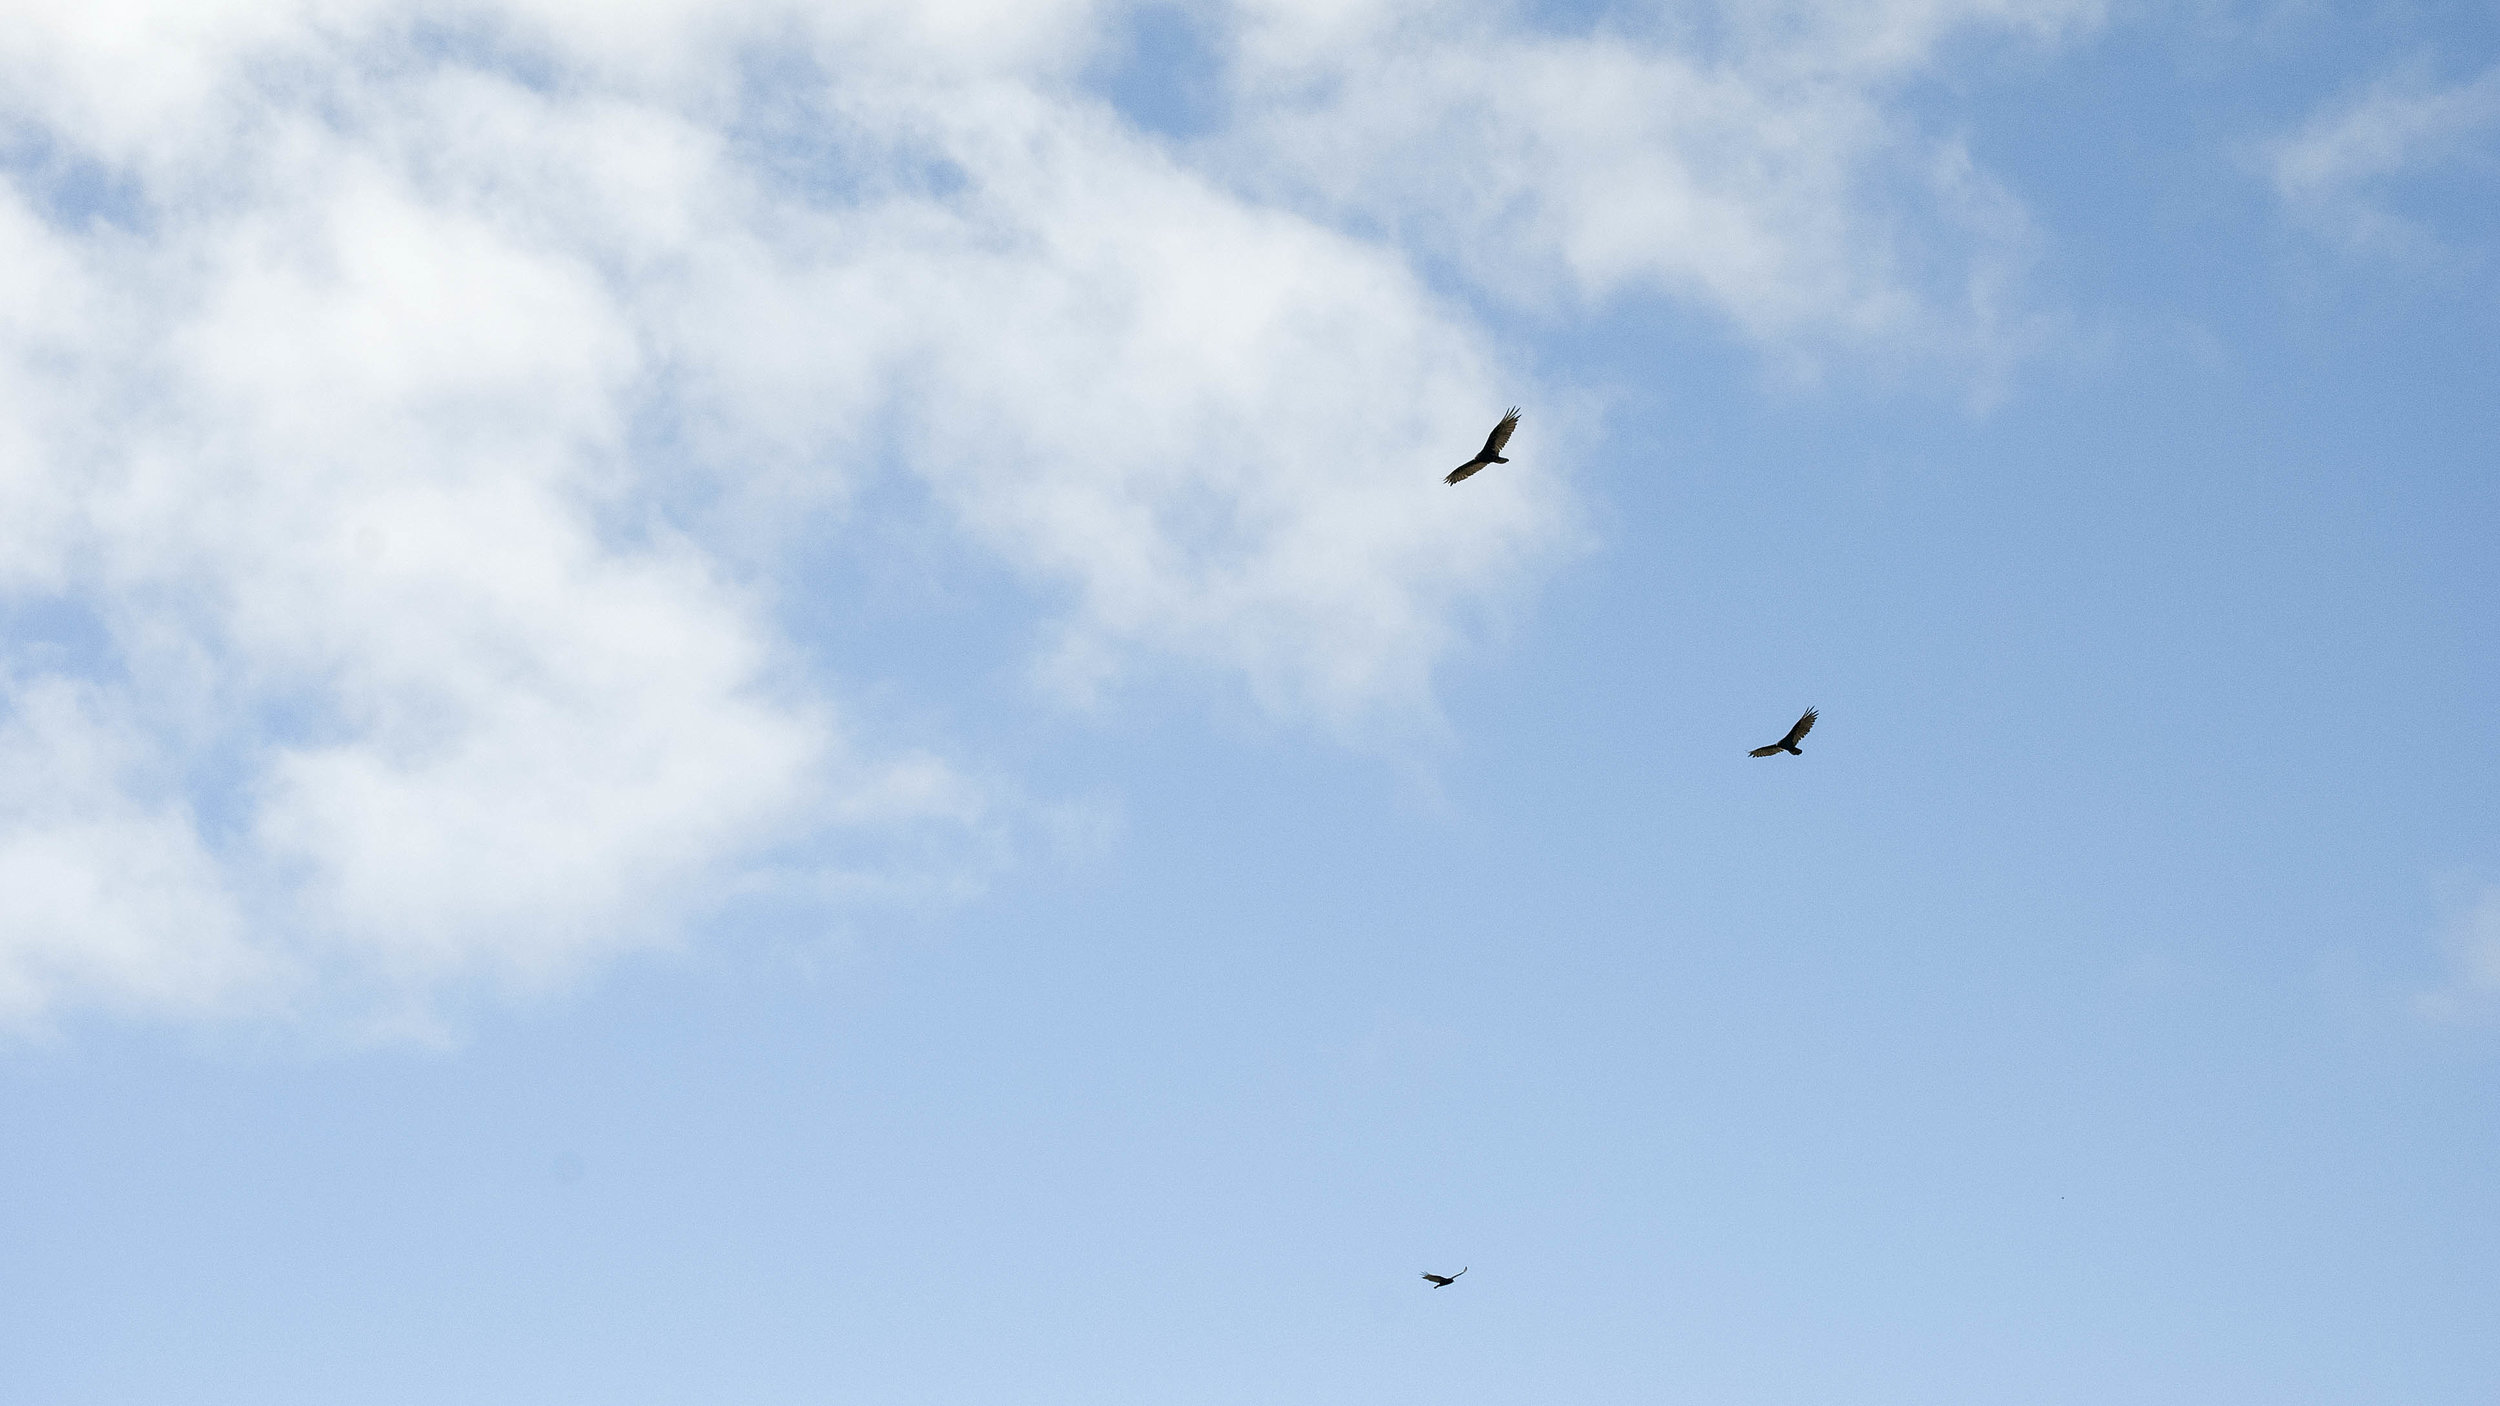 Three turkey vultures, soaring overhead.